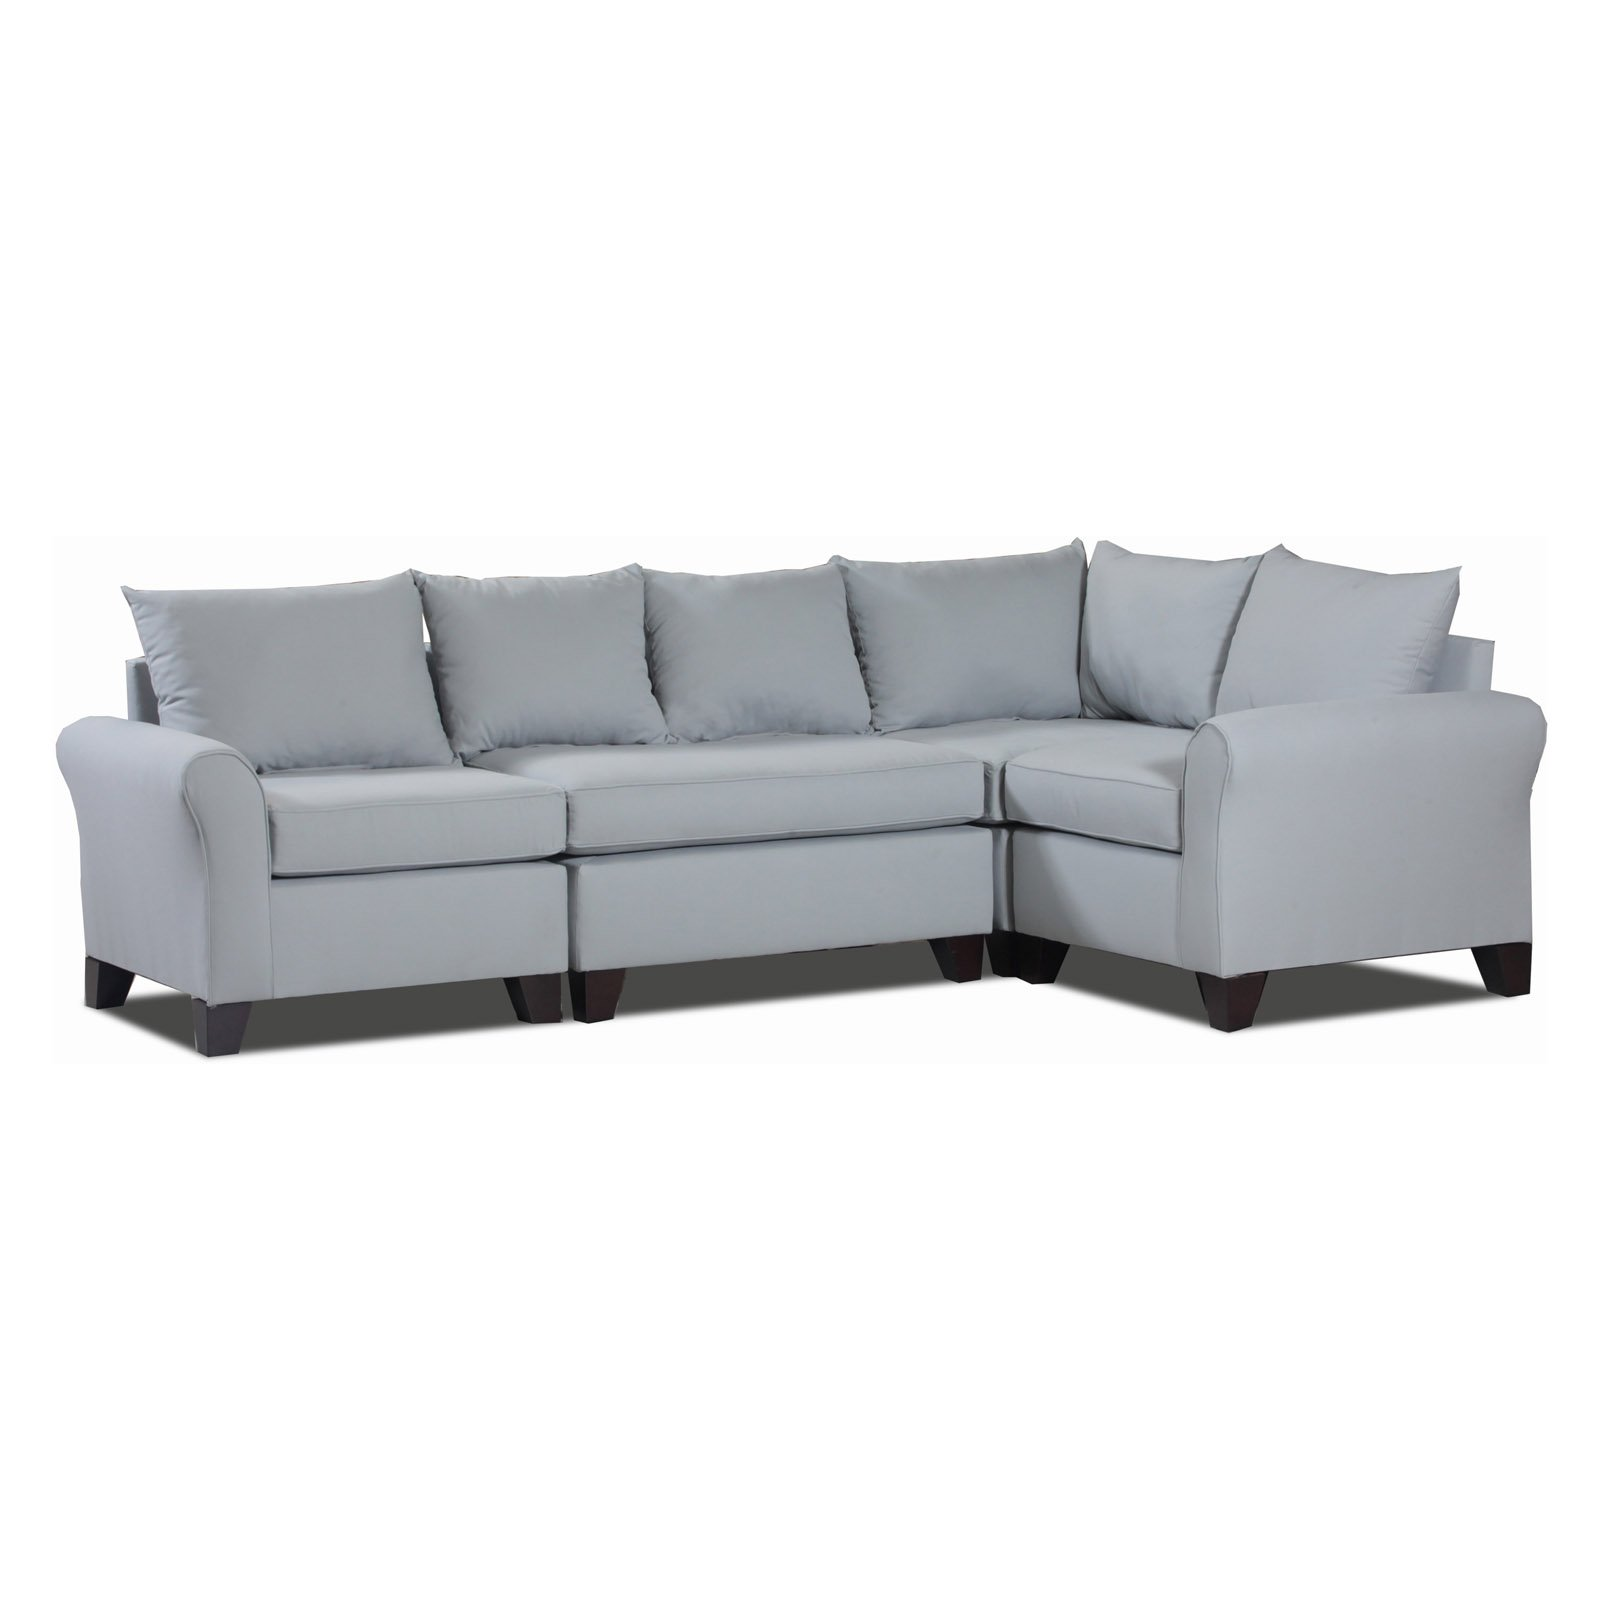 Carolina Accents Belle Meade 4 Piece Sectional by